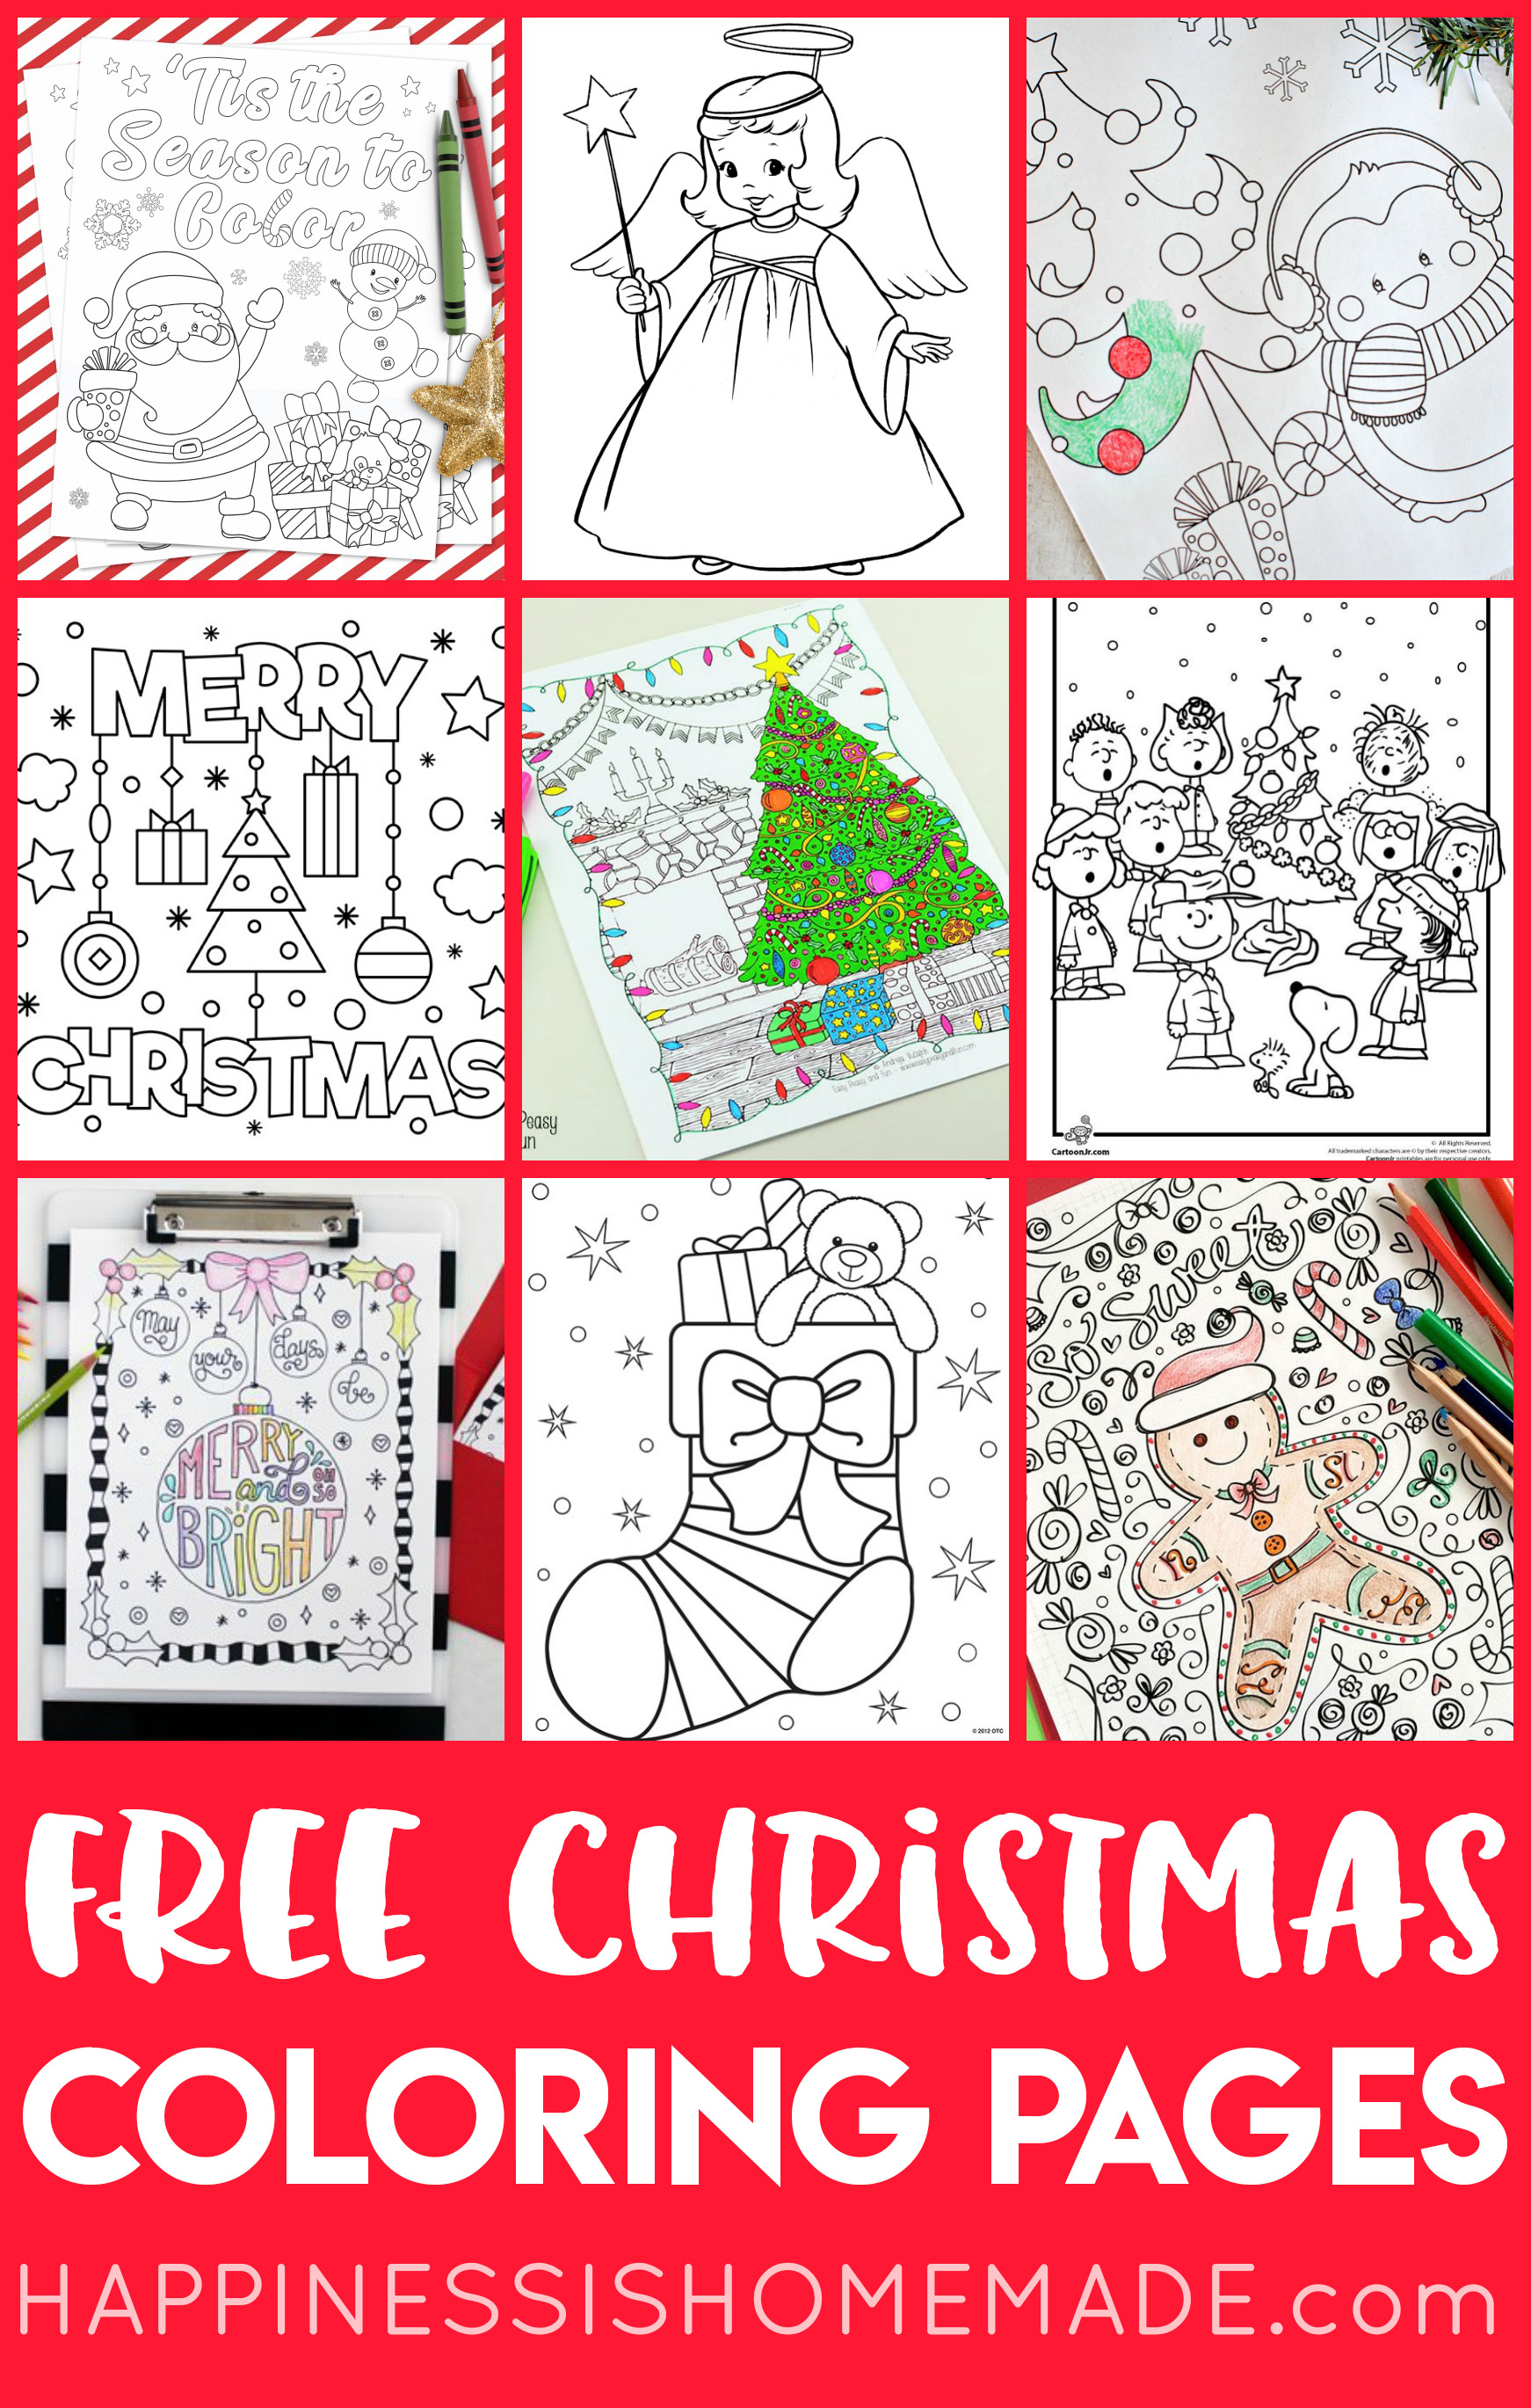 Christmas will be here before you know it, and that means that it's time for some fun and FREE printable Christmas coloring pages!